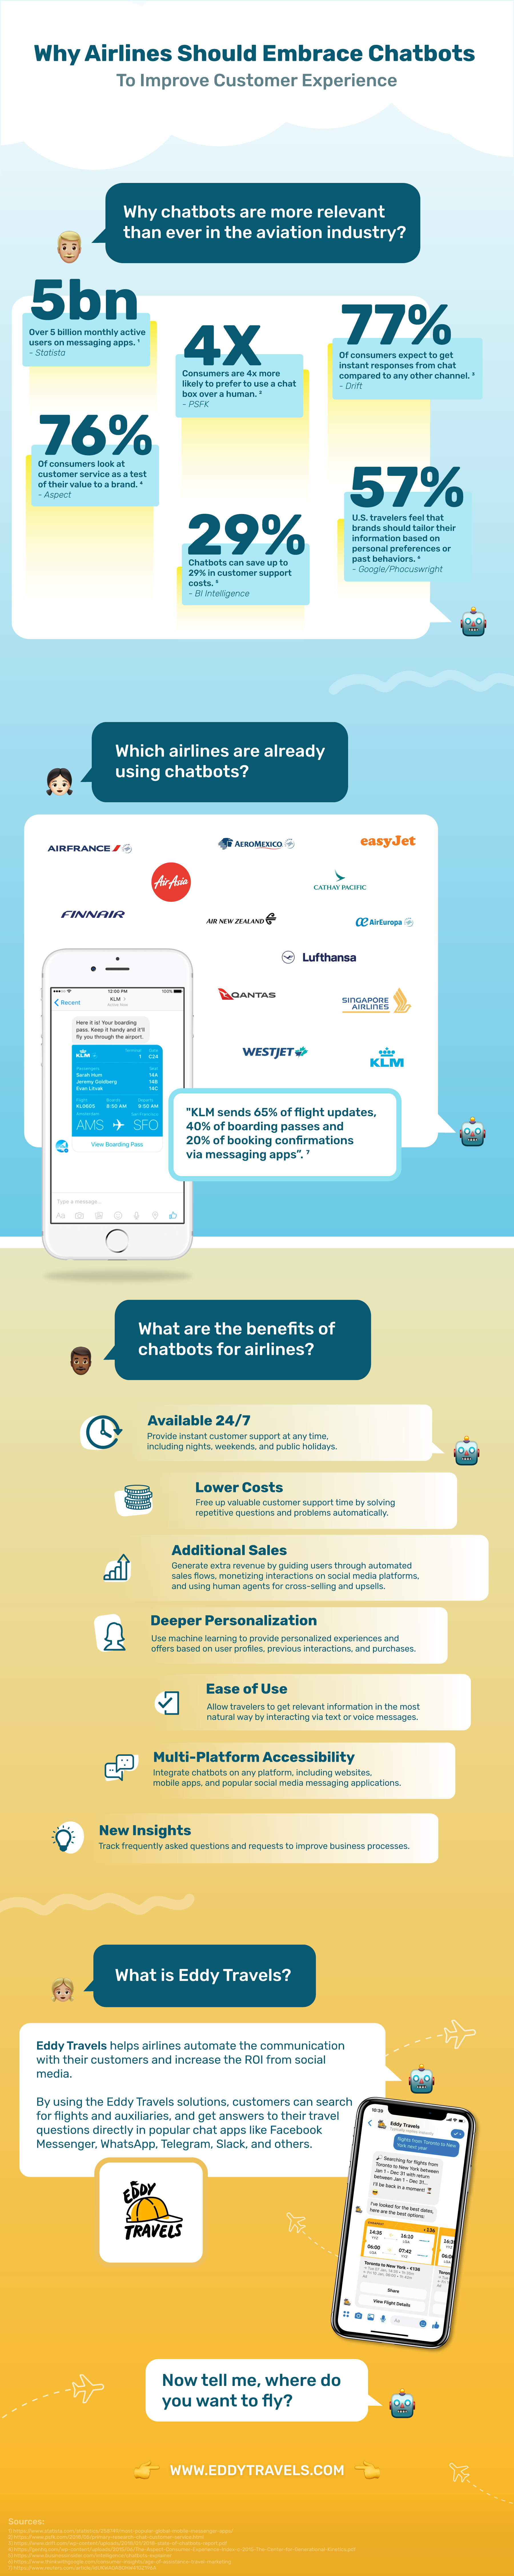 Infographic - Why Airlines Should Embrace Chatbots To Improve Customer Experience by Eddy Travels.png